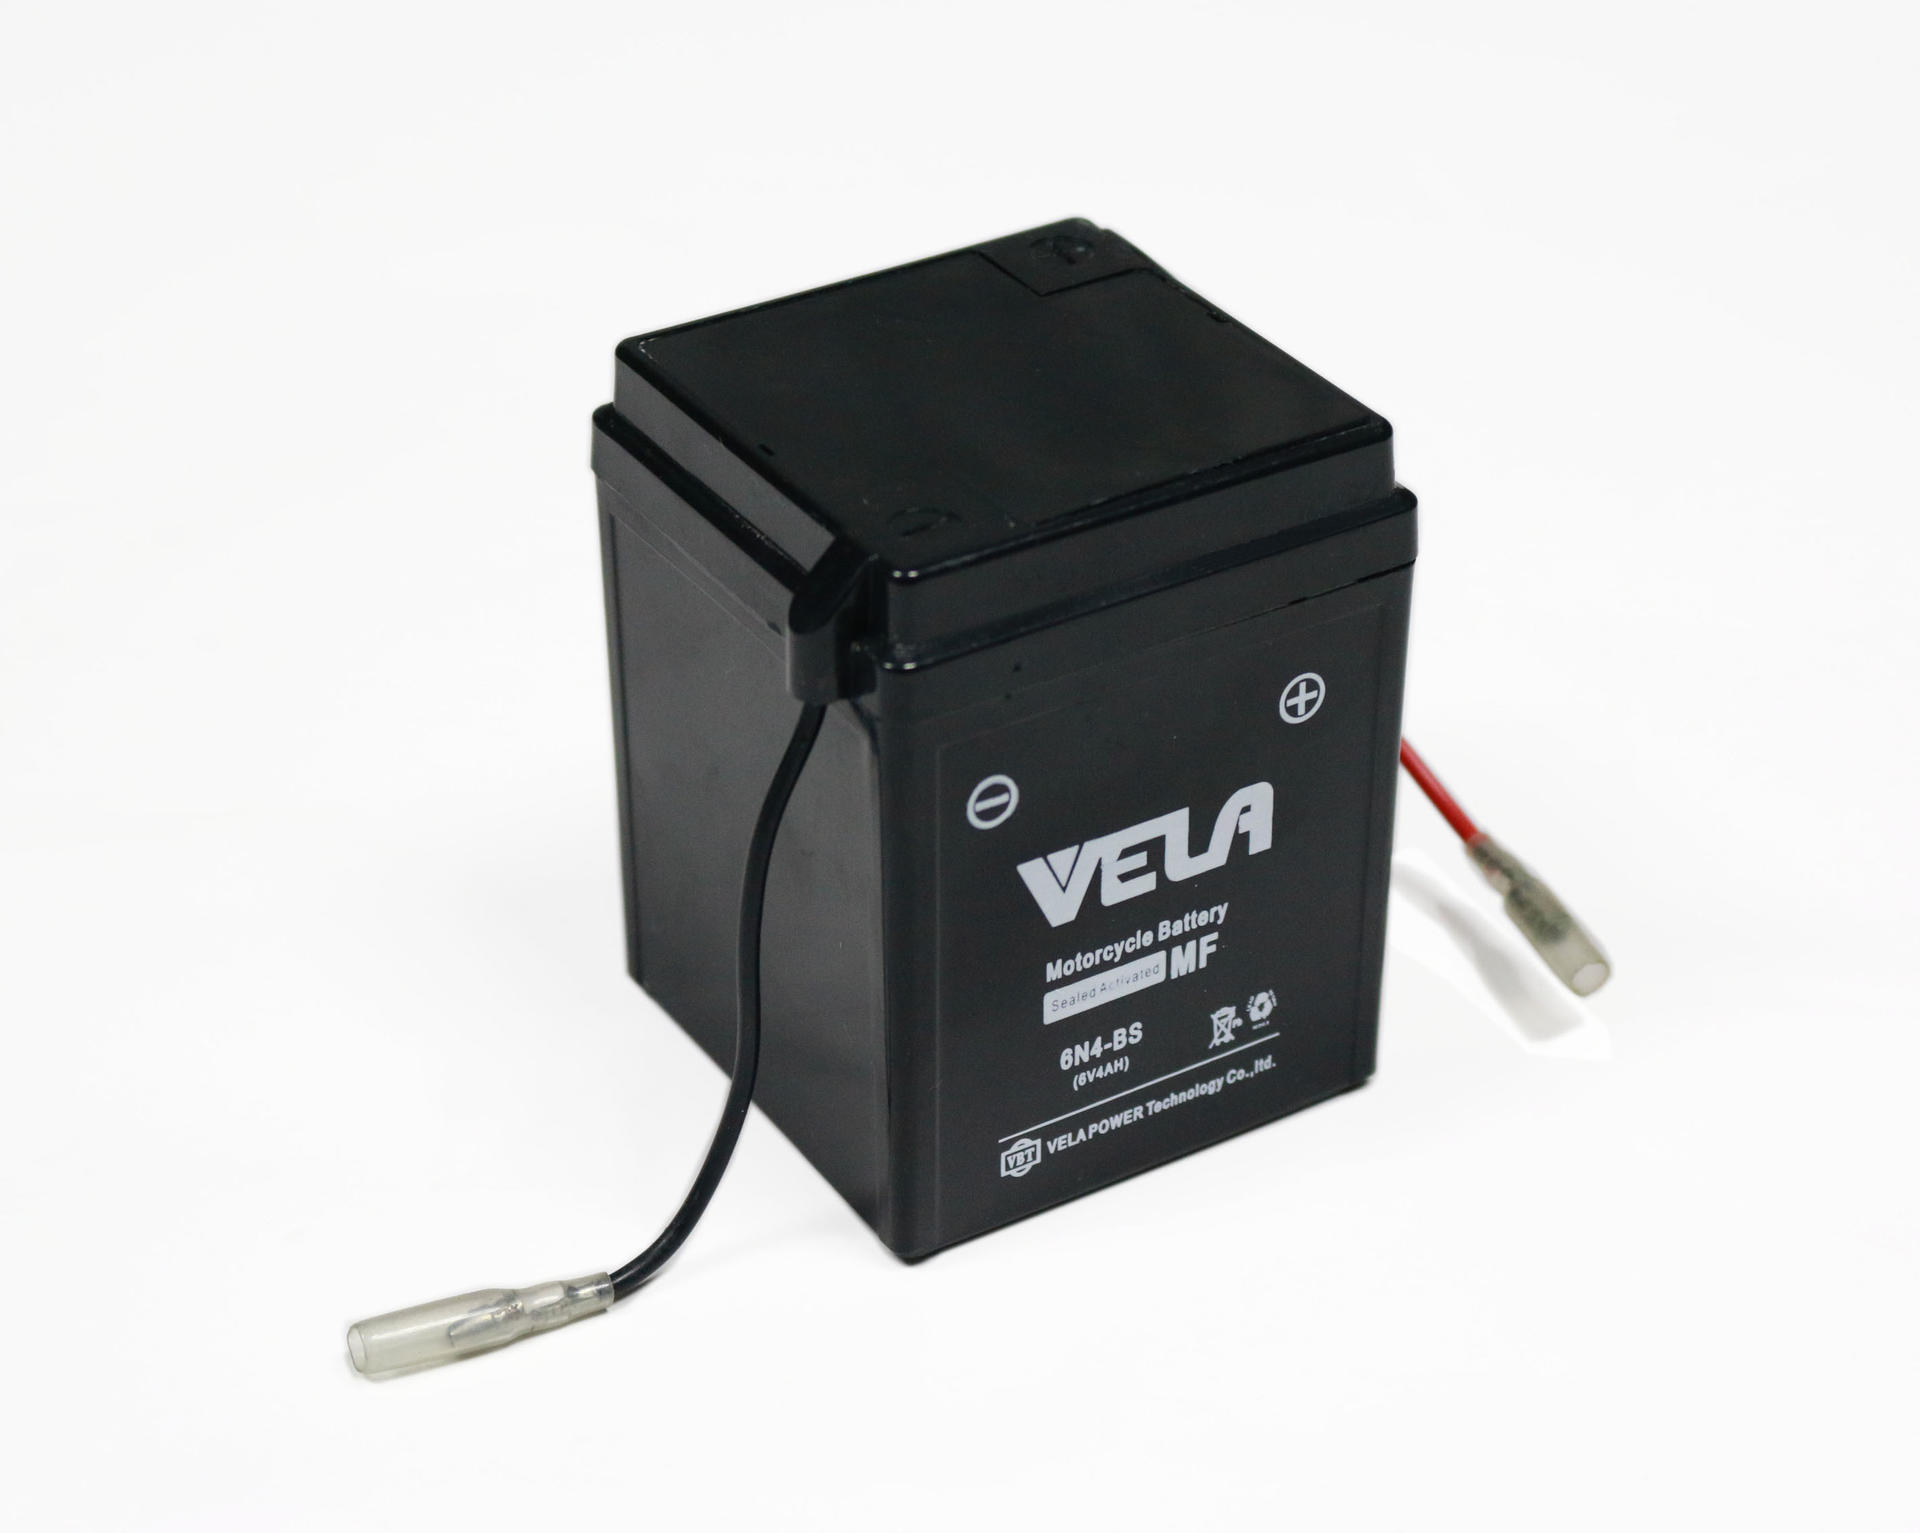 6n4-bs 6 volt 4ah small motorcycle battery with VELA brand